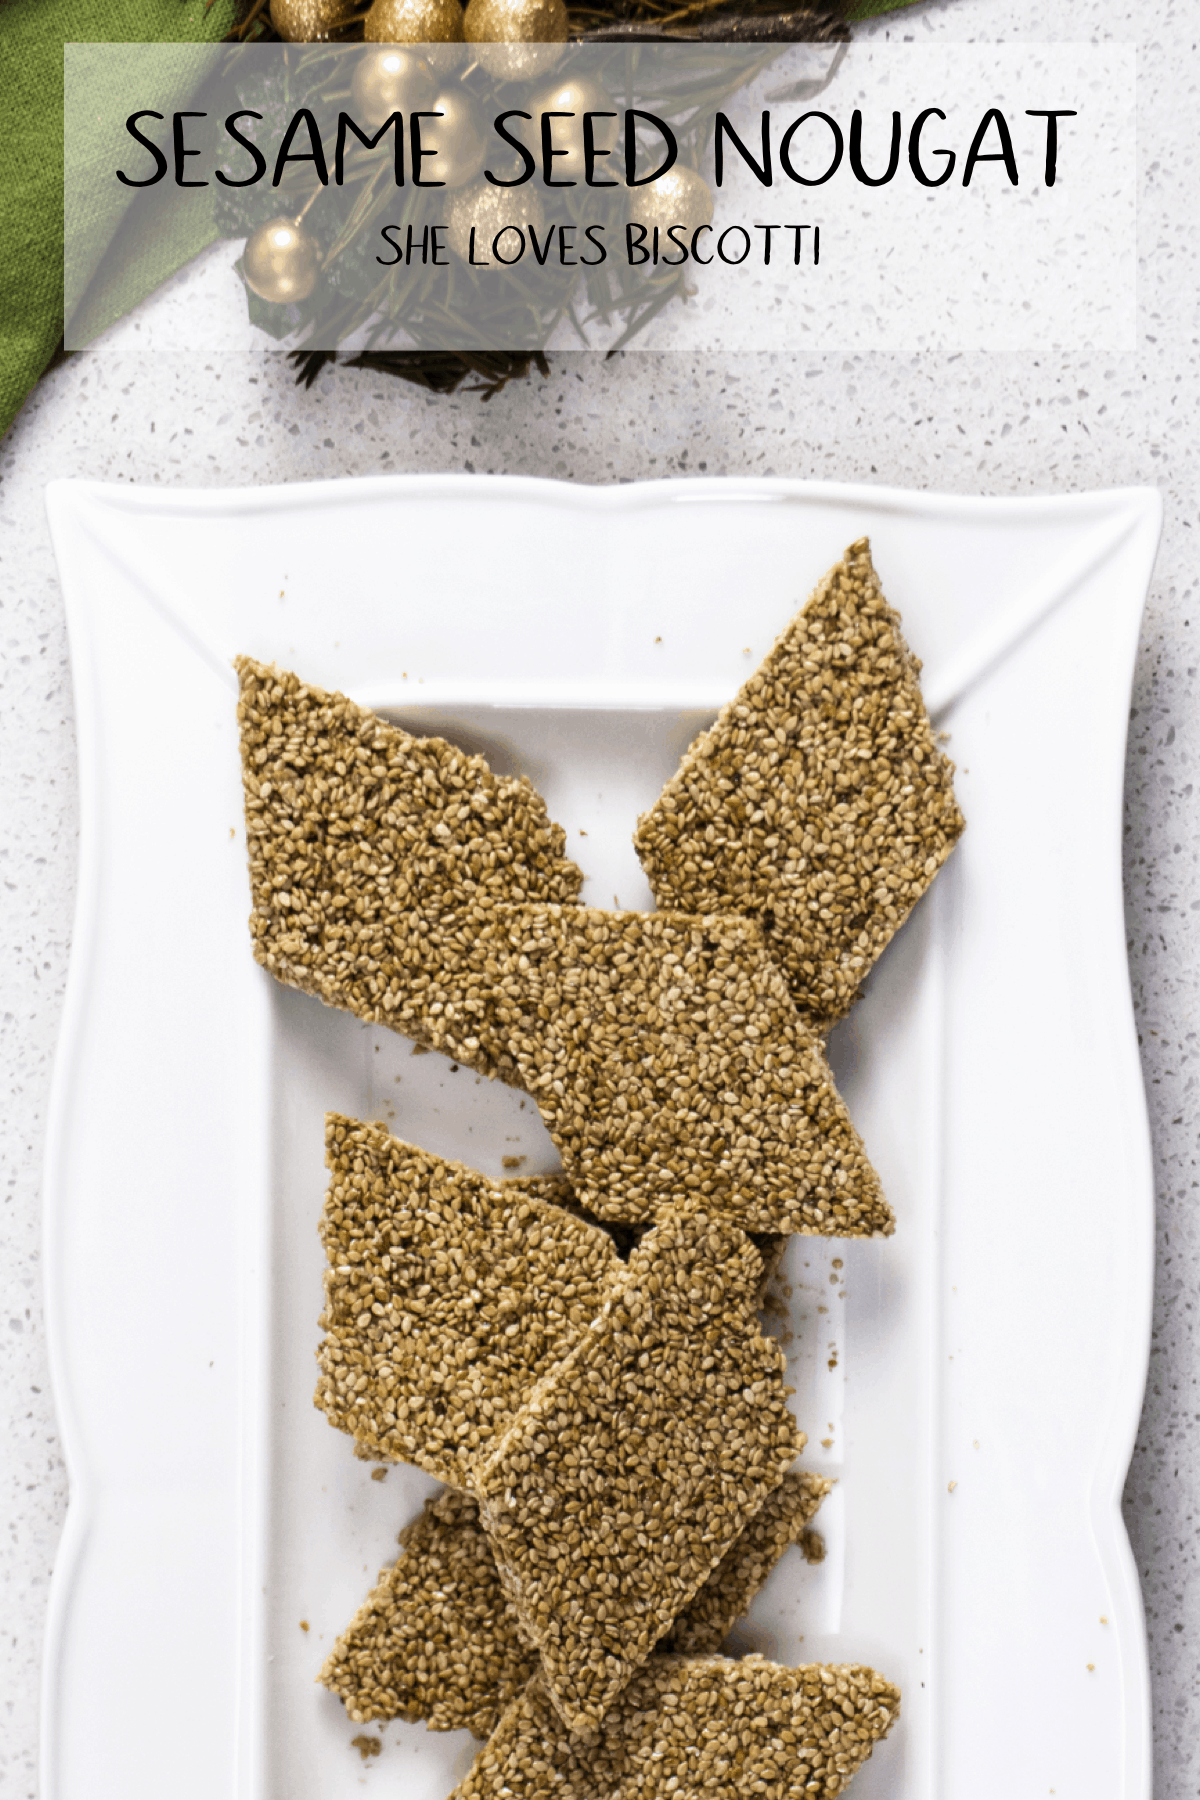 Sesame Seed Nougat -a Southern Italian sweet that can easily  be made at home. If you like crunchy sesame bars, you are going to love these! #shelovesbiscotti #sesameseeds #sesamesnaps #candy #holidaytreat #Italiancandy #cubbaita #Confetto #pastelli